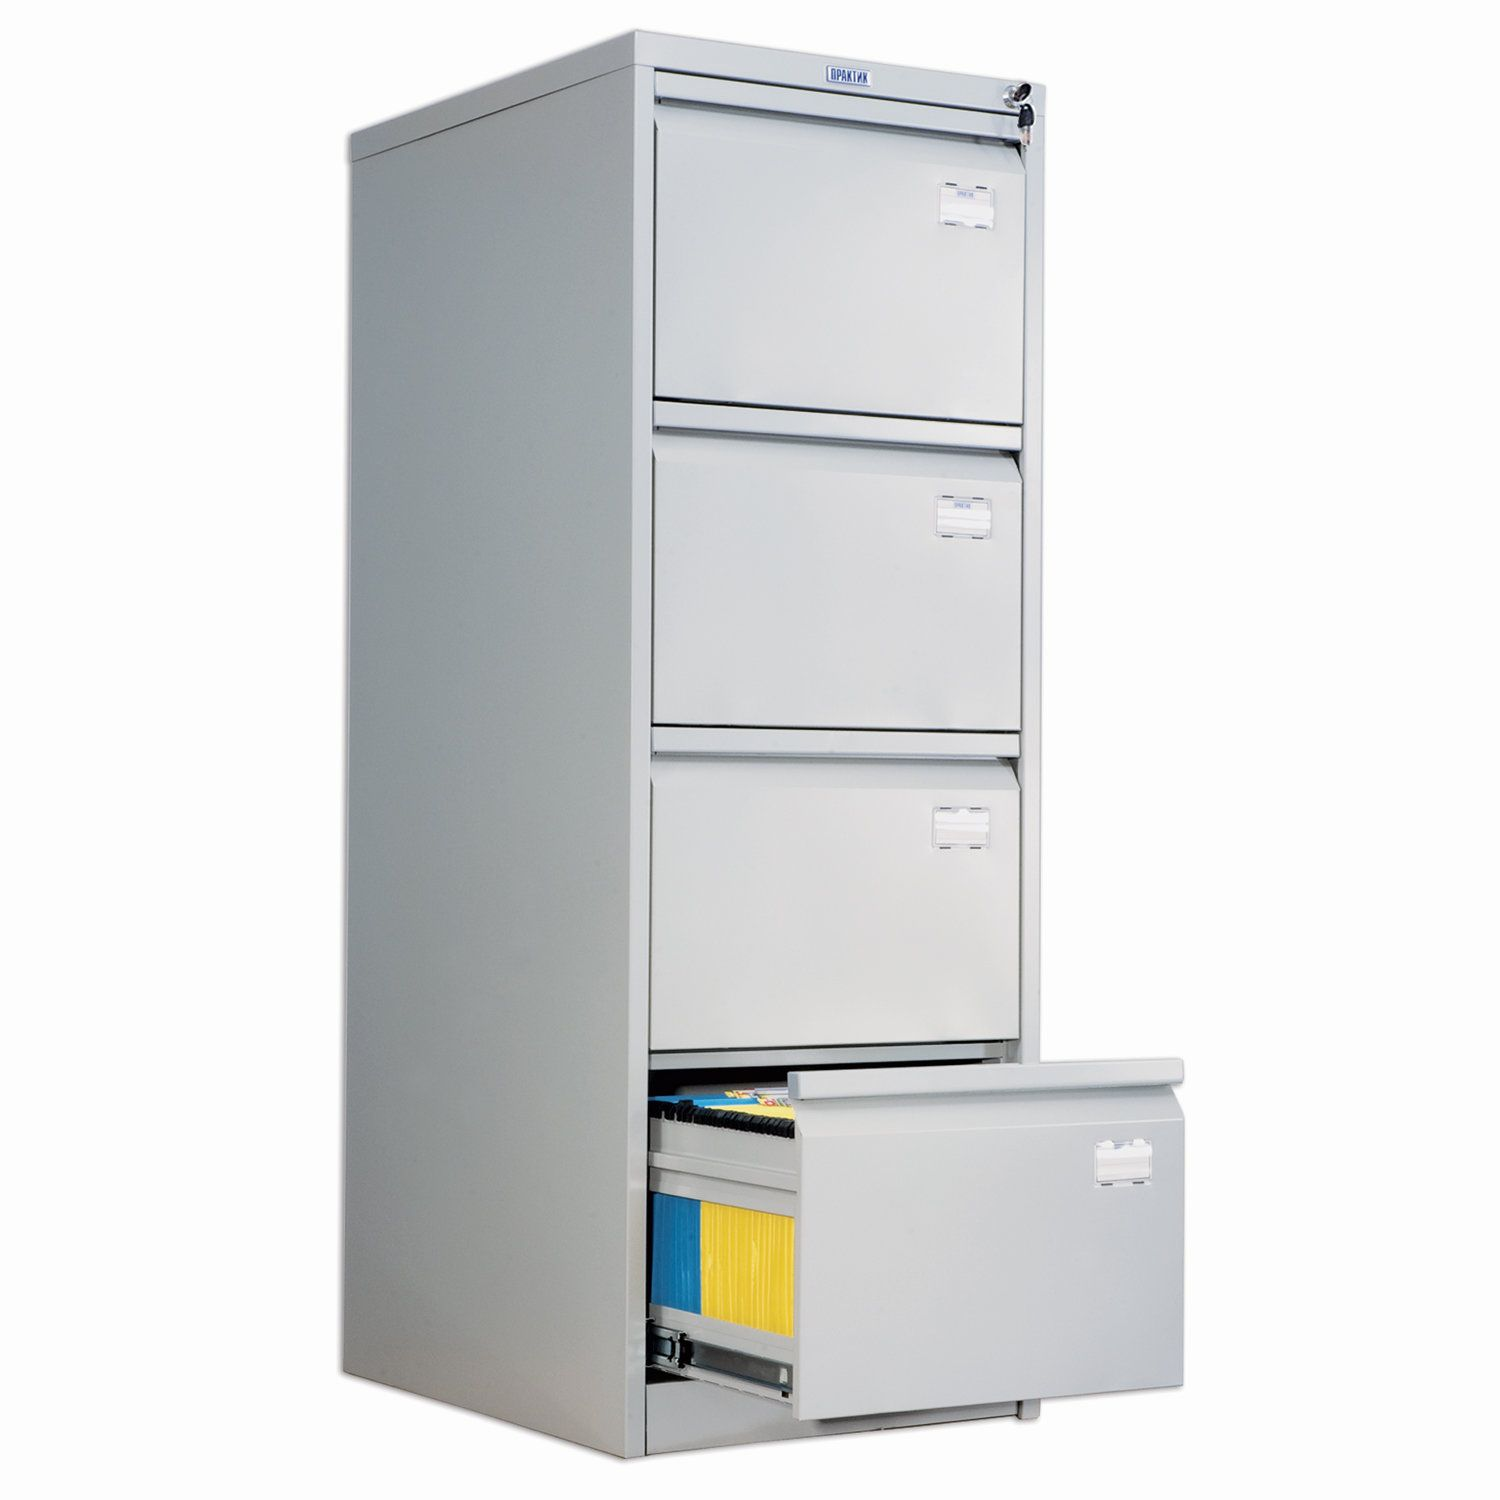 AFC-04 card cabinet, 1330 x467 x630 mm, 4 boxes, for 220 hanging folders, Foolscap or A4 folder format (FREE folders)